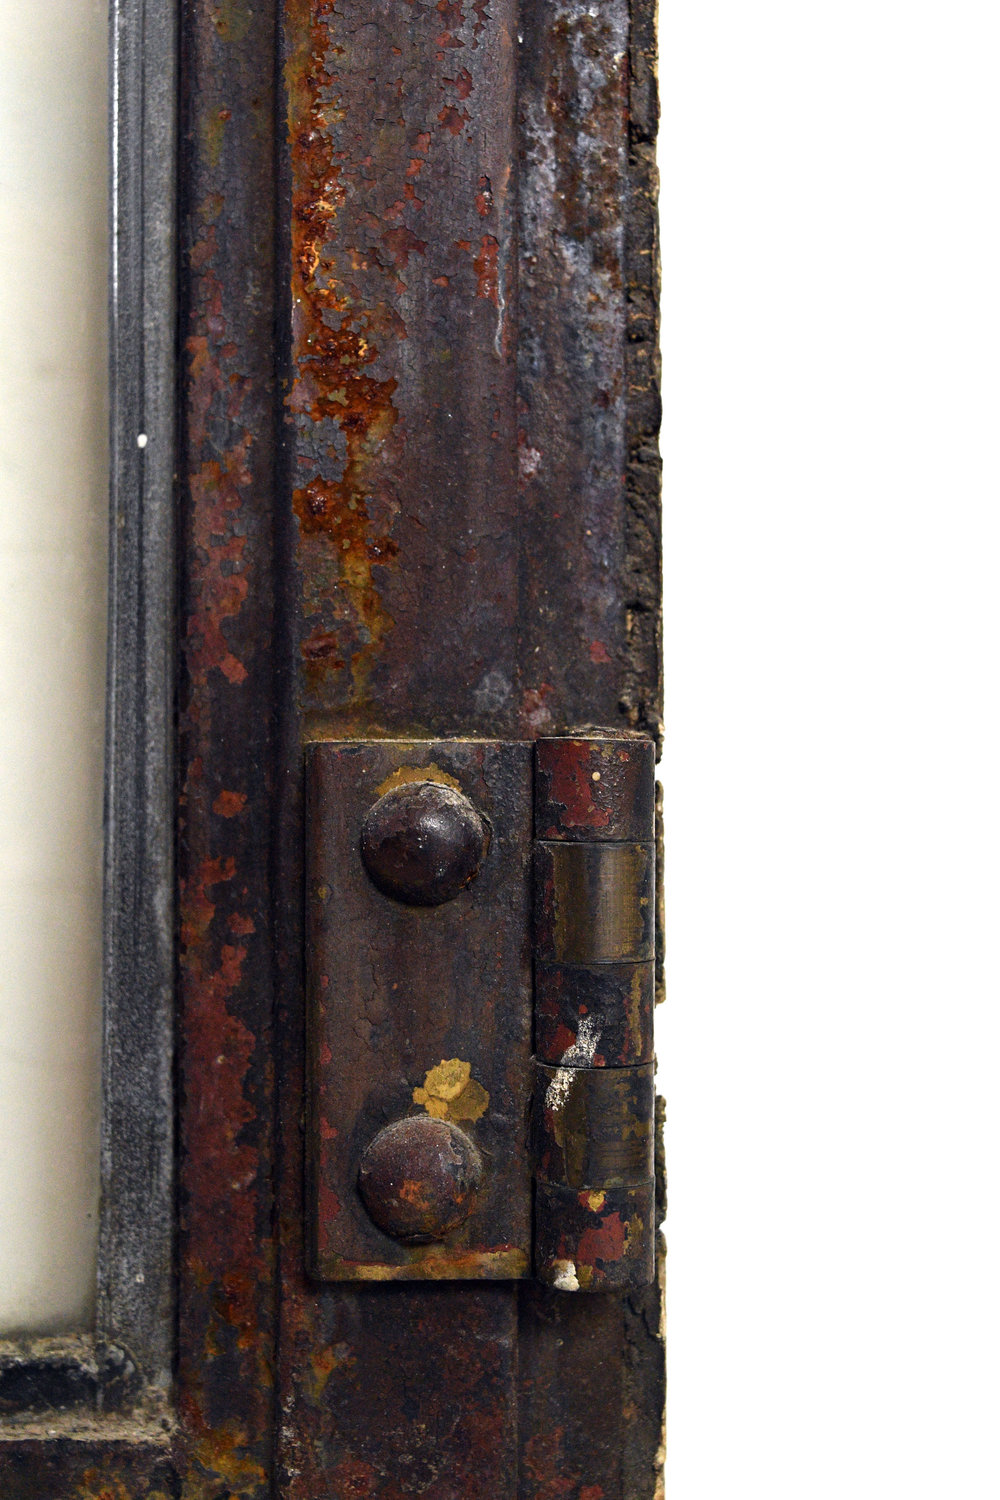 47989-window-two-hinge.jpg